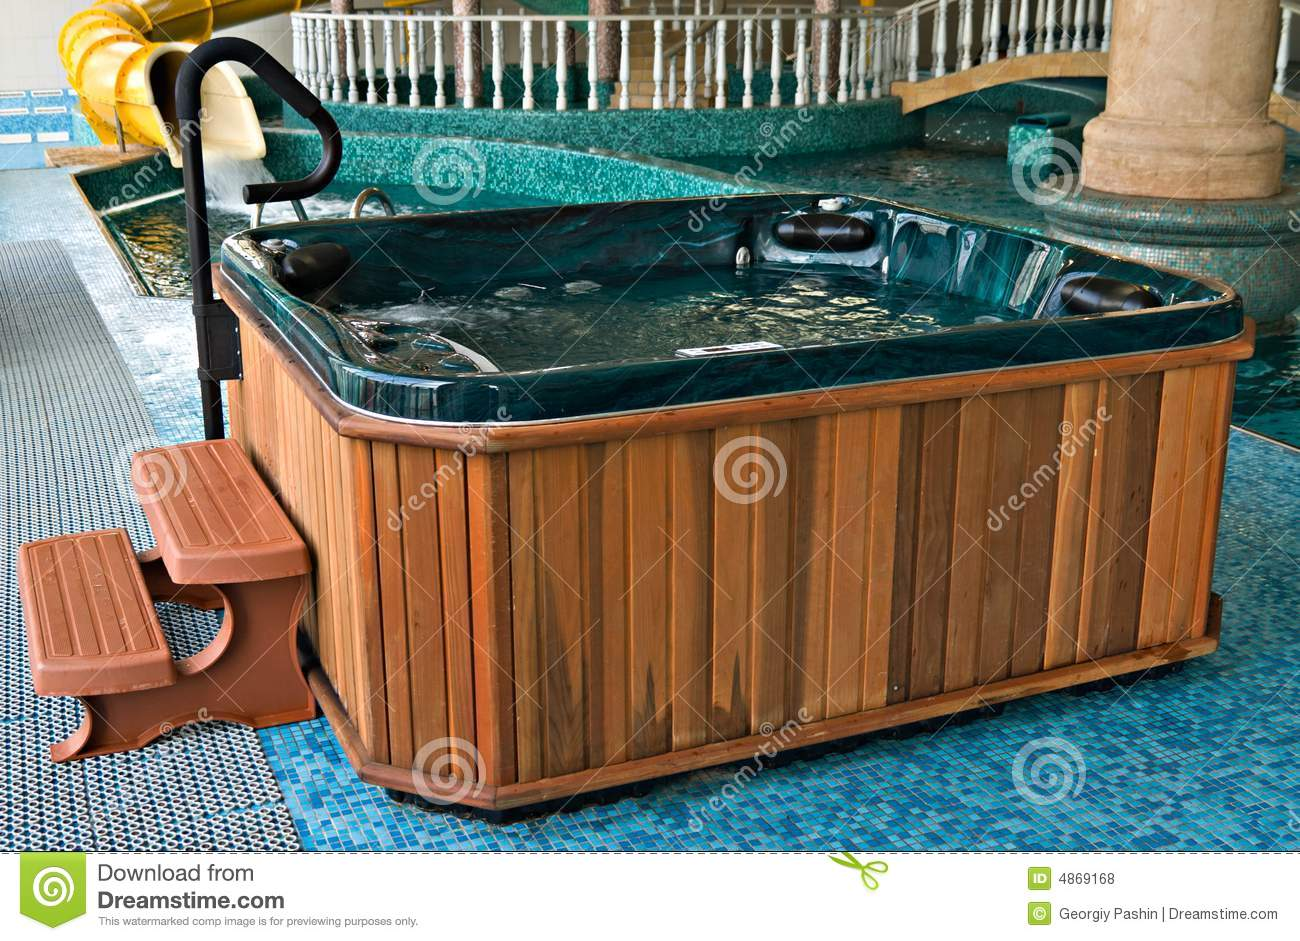 Jacuzzi near the swimming pool royalty free stock photos image 4869168 for Swimming pool and jacuzzi near me